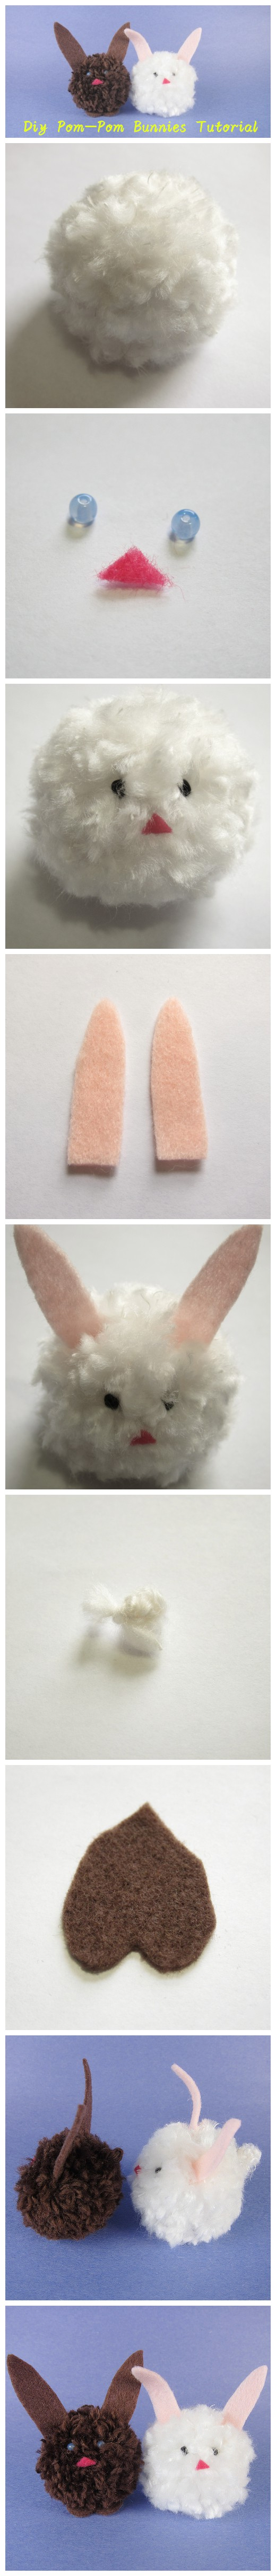 Diy Pom-Pom Bunnies Tutorial